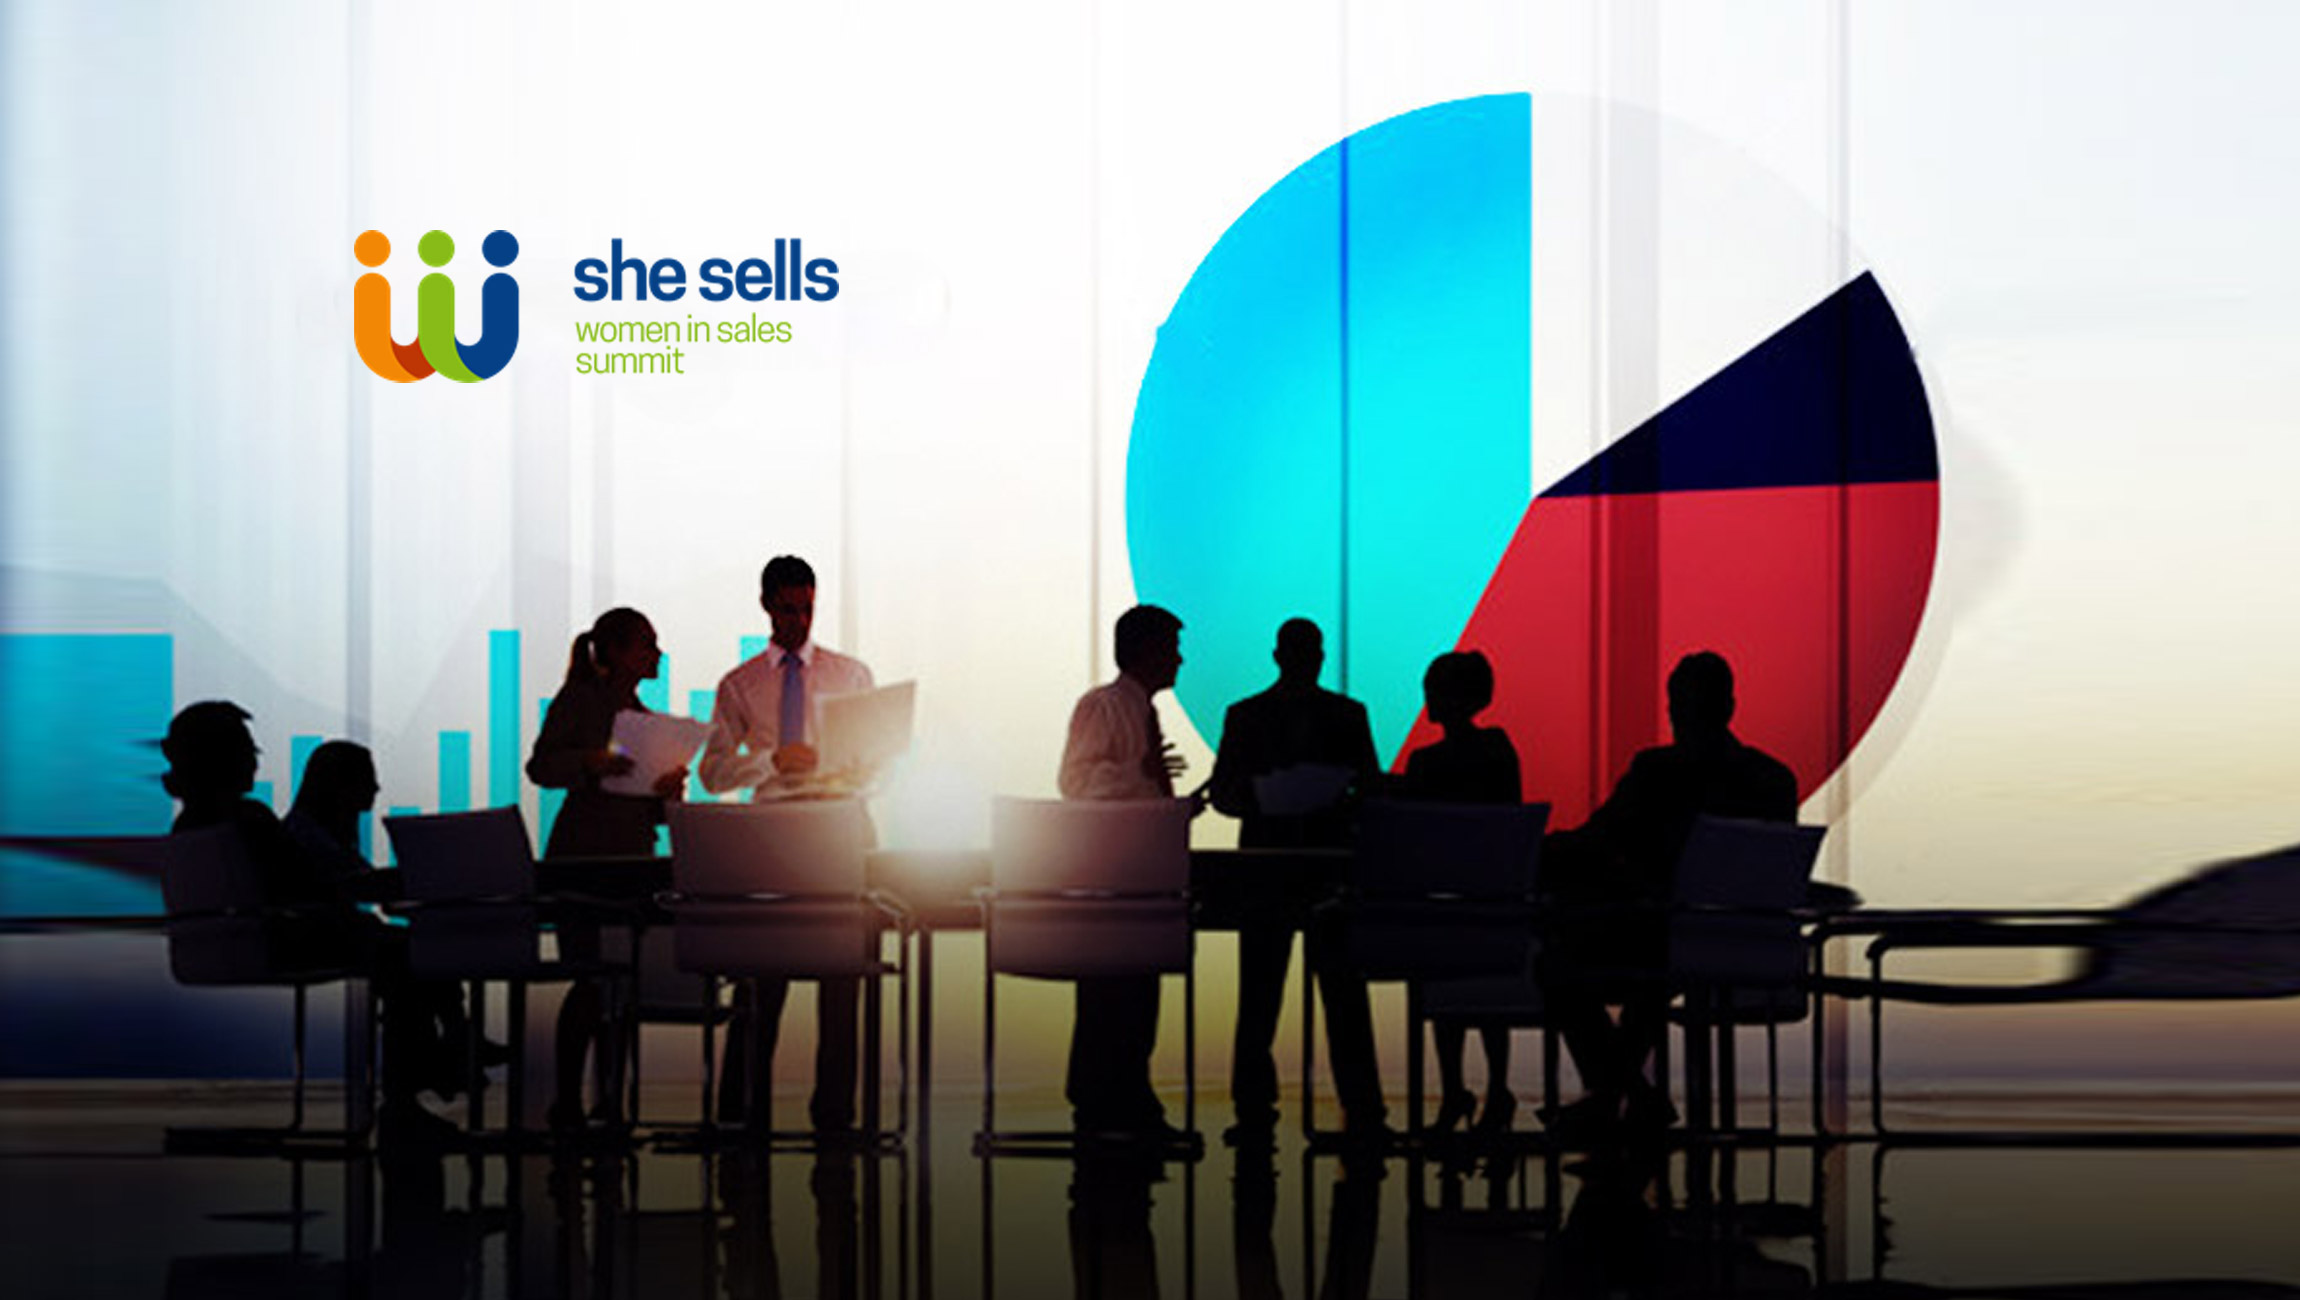 She-Sells-Summit-Gathers-Prominent-Women-in-Sales-Groups-to-Create-the-First-Ever-Industry-Wide-Summit-for-Women-in-Sales